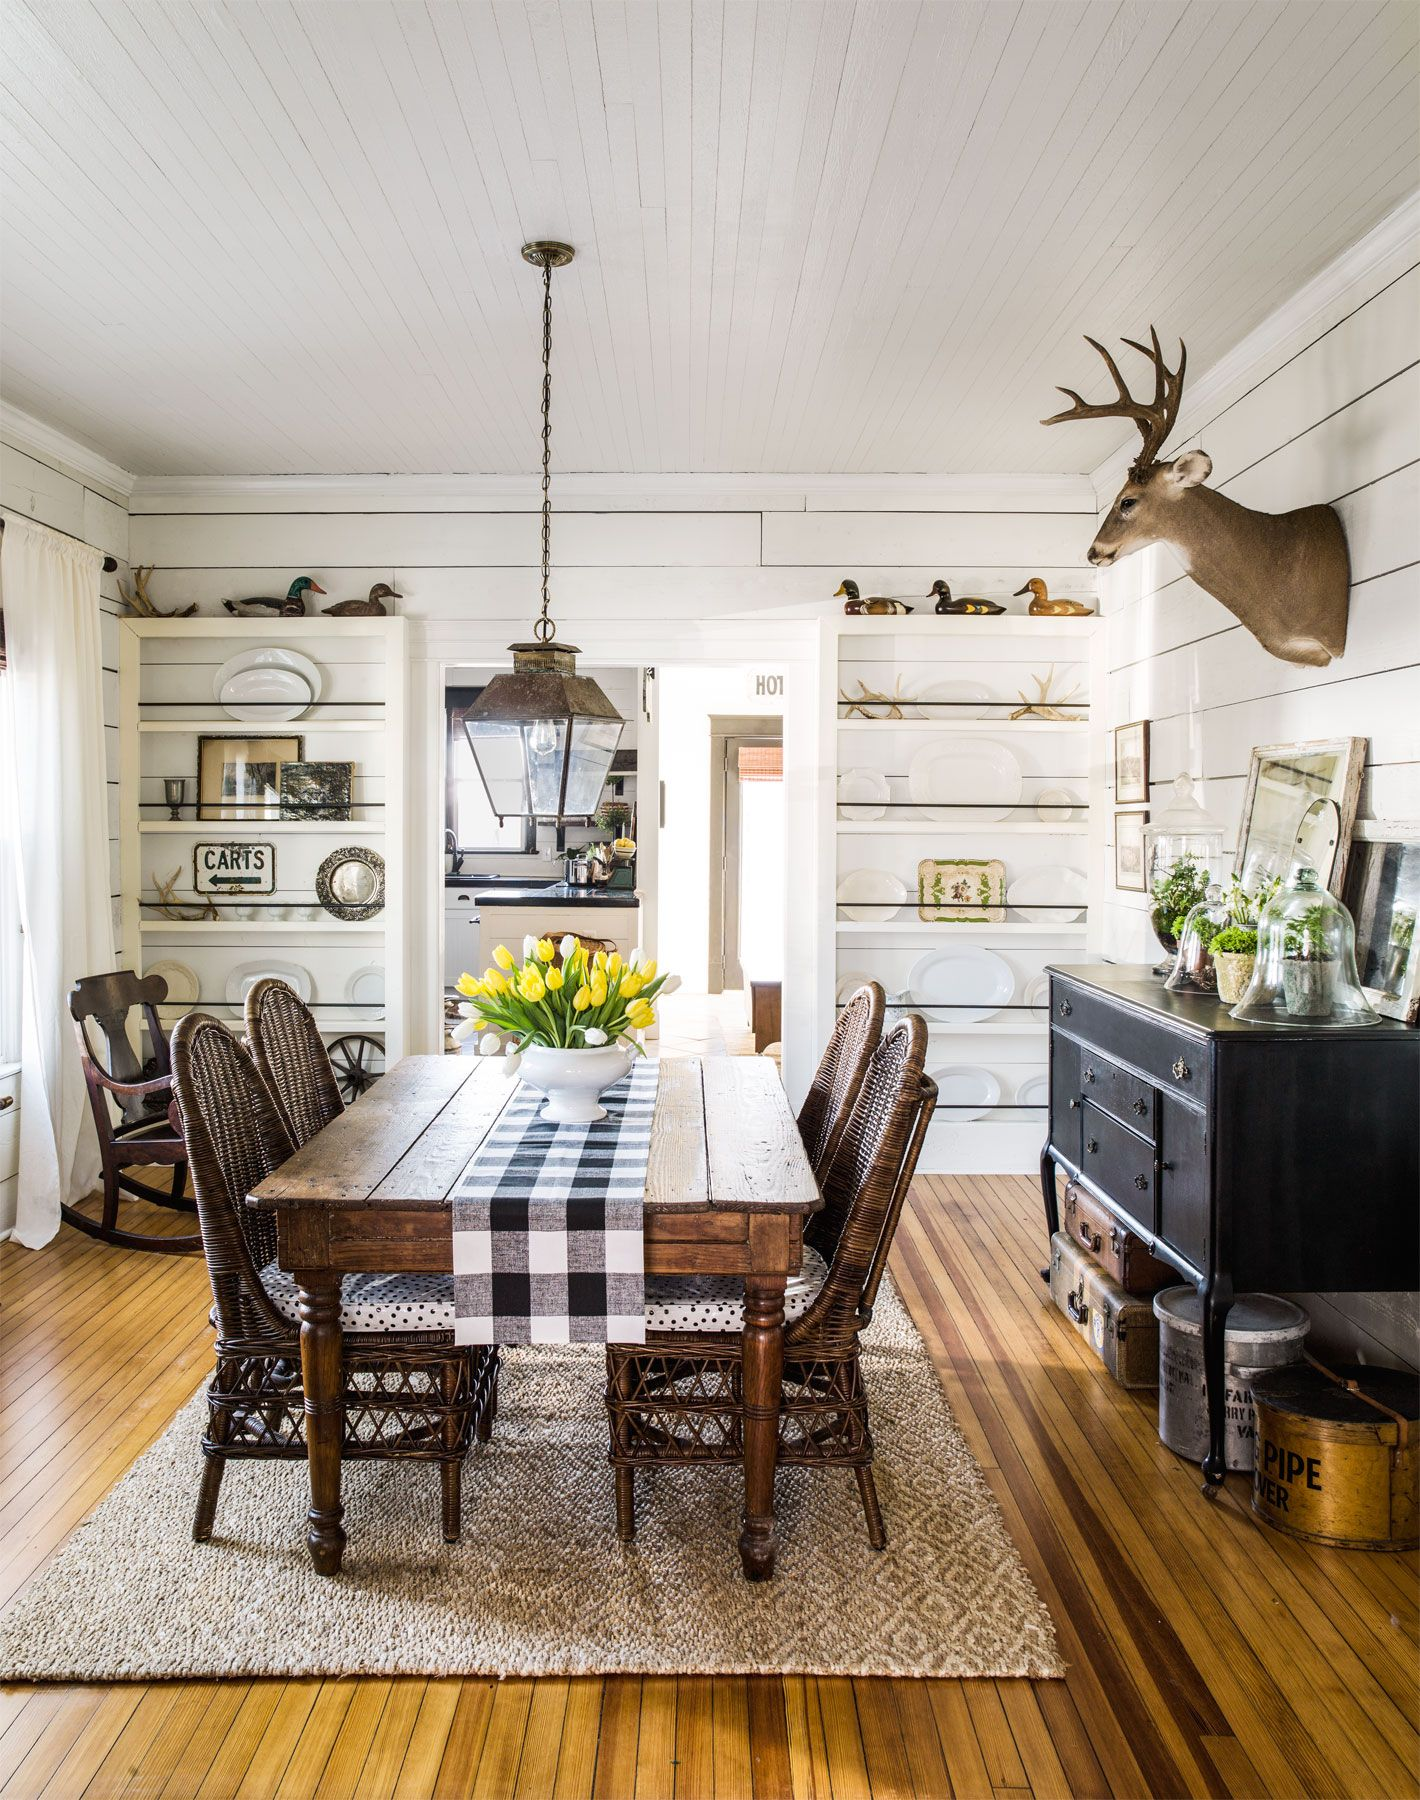 18 Vintage Decorating Ideas From A 1934 Farmhouse For The Home